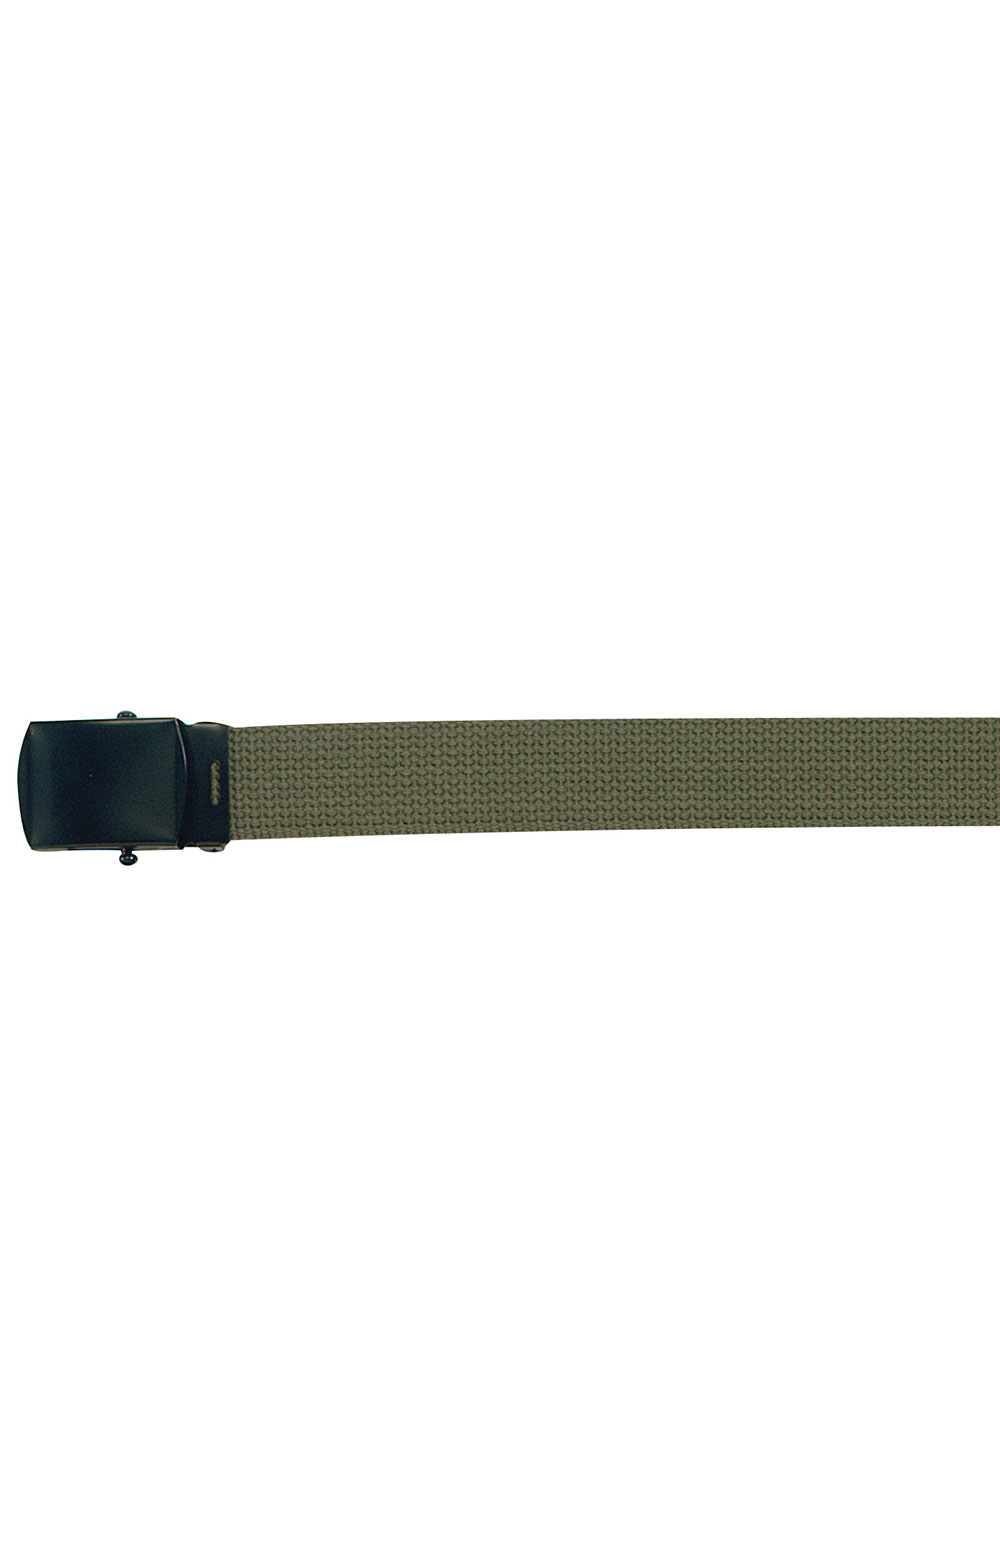 (4294) Military Web Belt With Black Buckle - Olive Drab